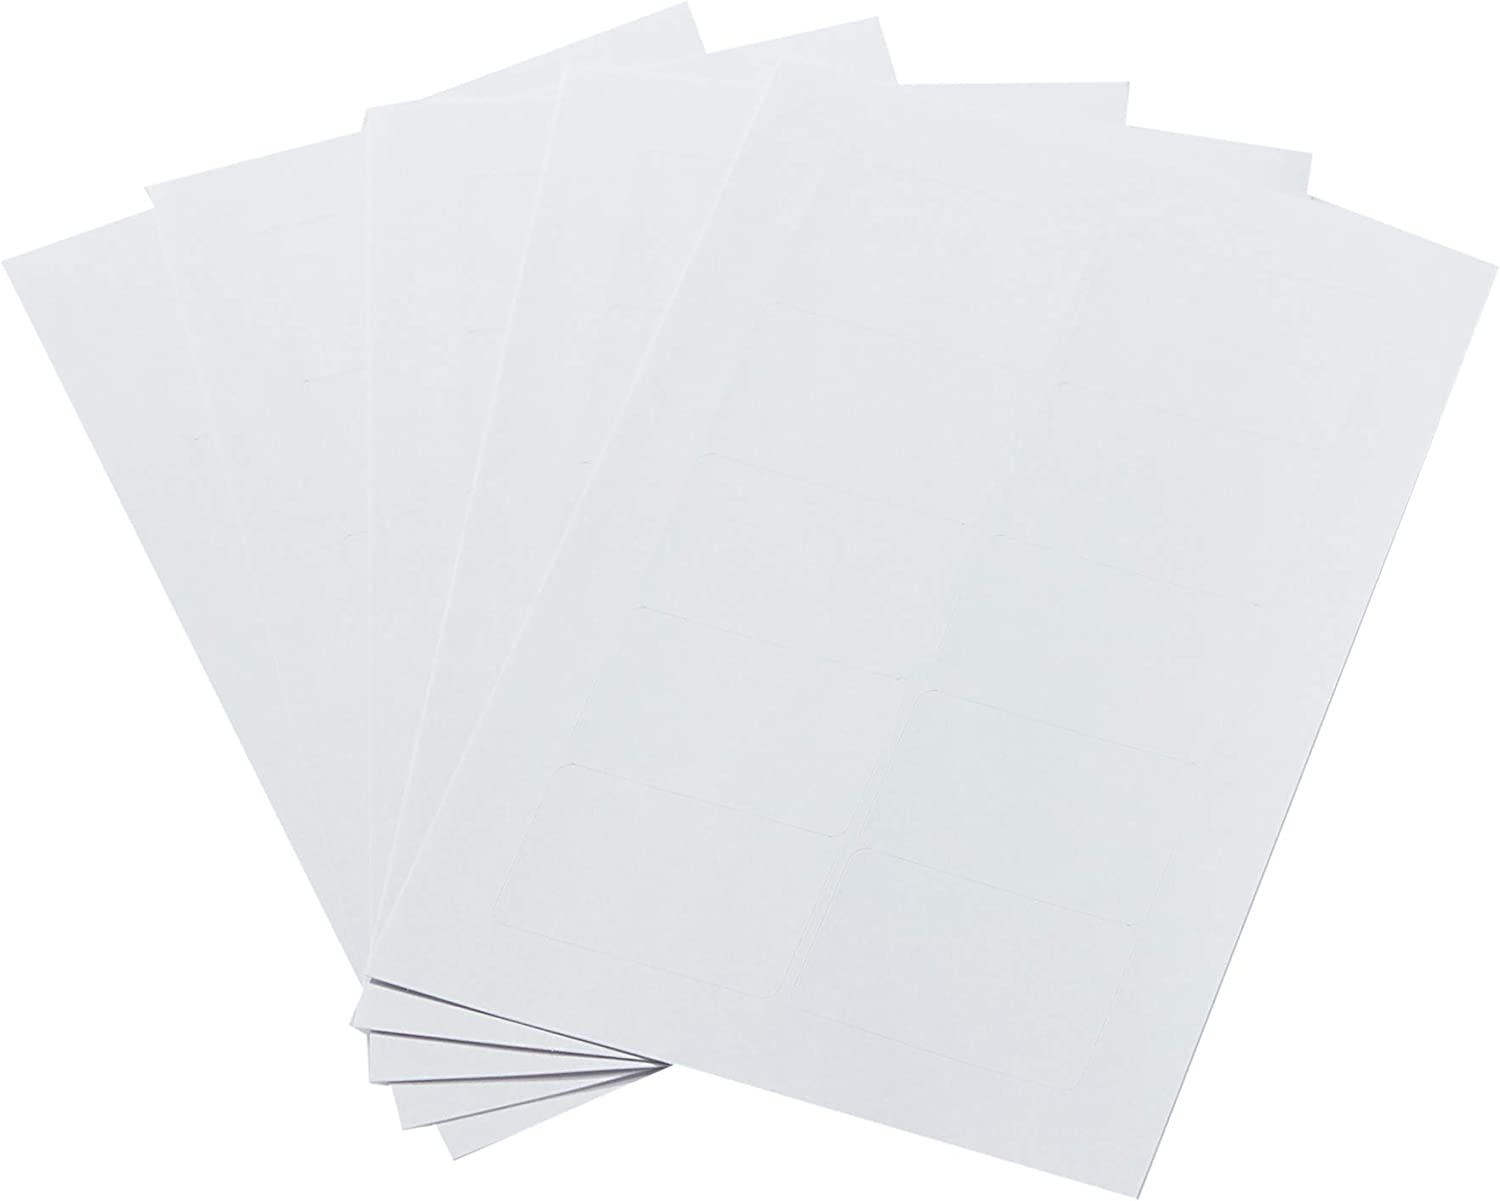 AmazonBasics Self-Adhesive Removable Labels, 1 x 1.5 Inches, White, 500-Pack